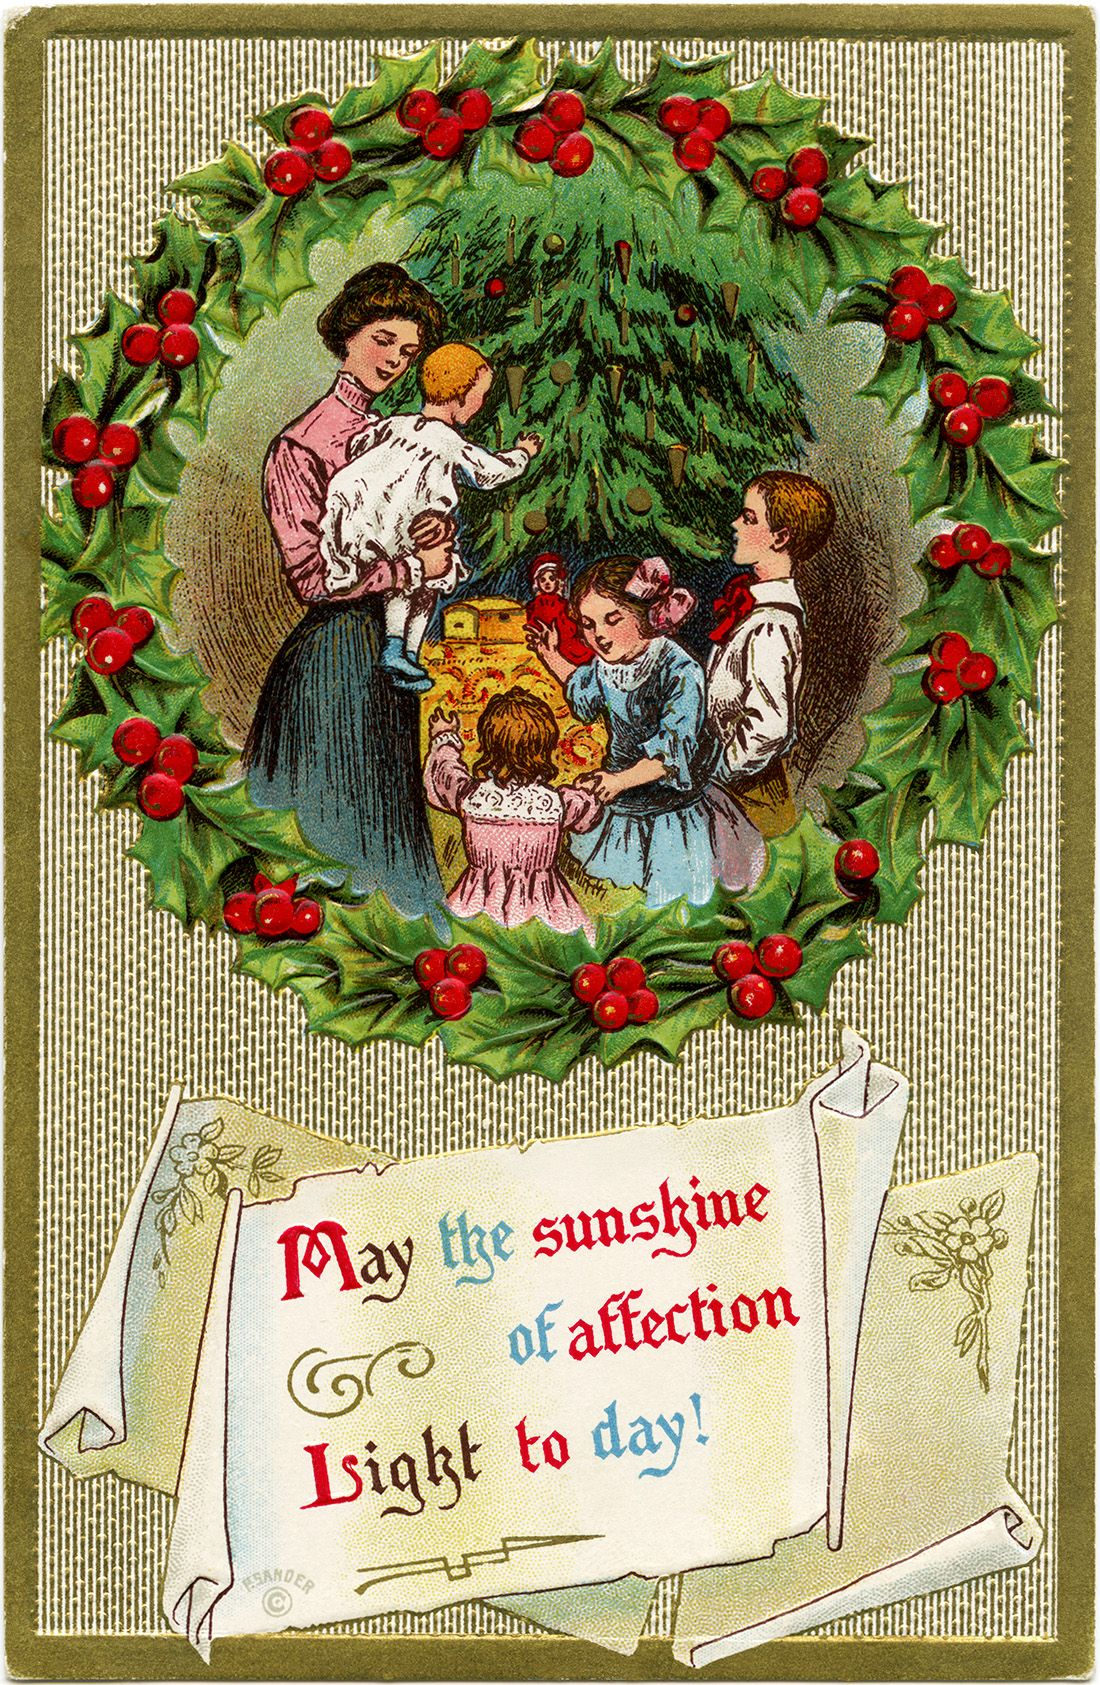 Wreath from old christmas cards - Victorian Christmas Clip Art Vintage Christmas Postcard Old Fashioned Christmas Card Family Around Christmas Tree Holly Berries Wreath Illustration